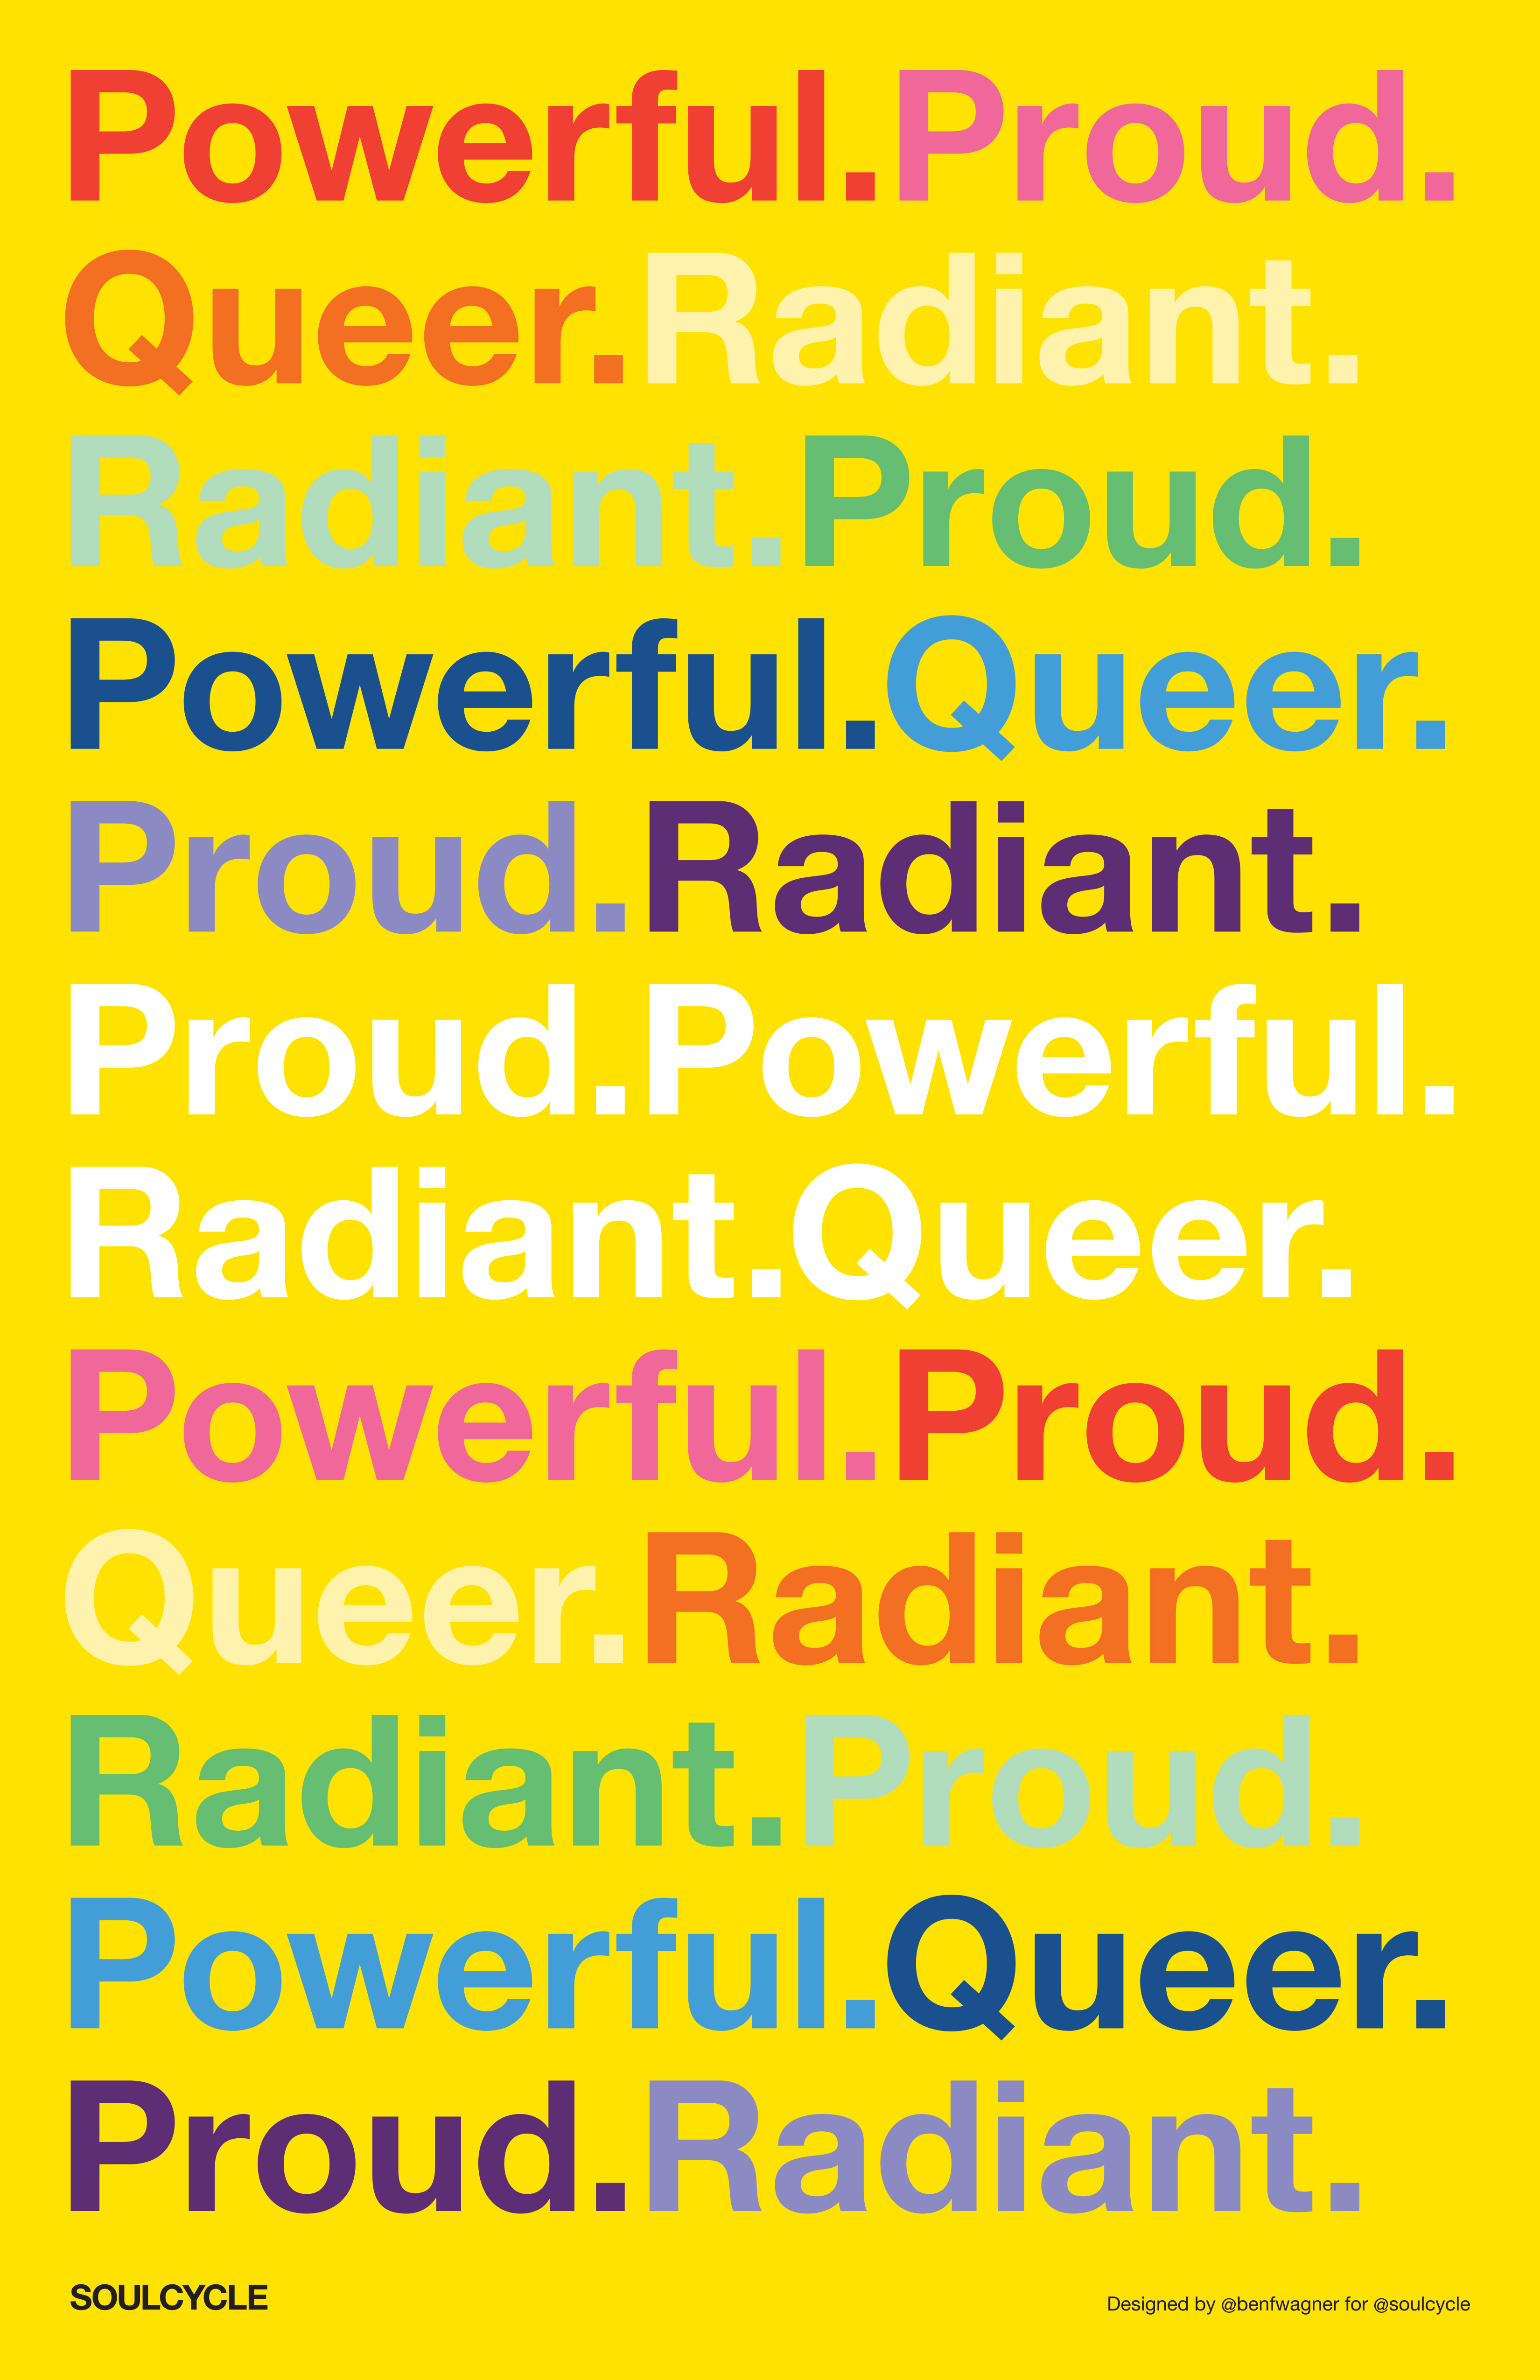 SoulCycle_Pride2019_Poster_@benfwagner